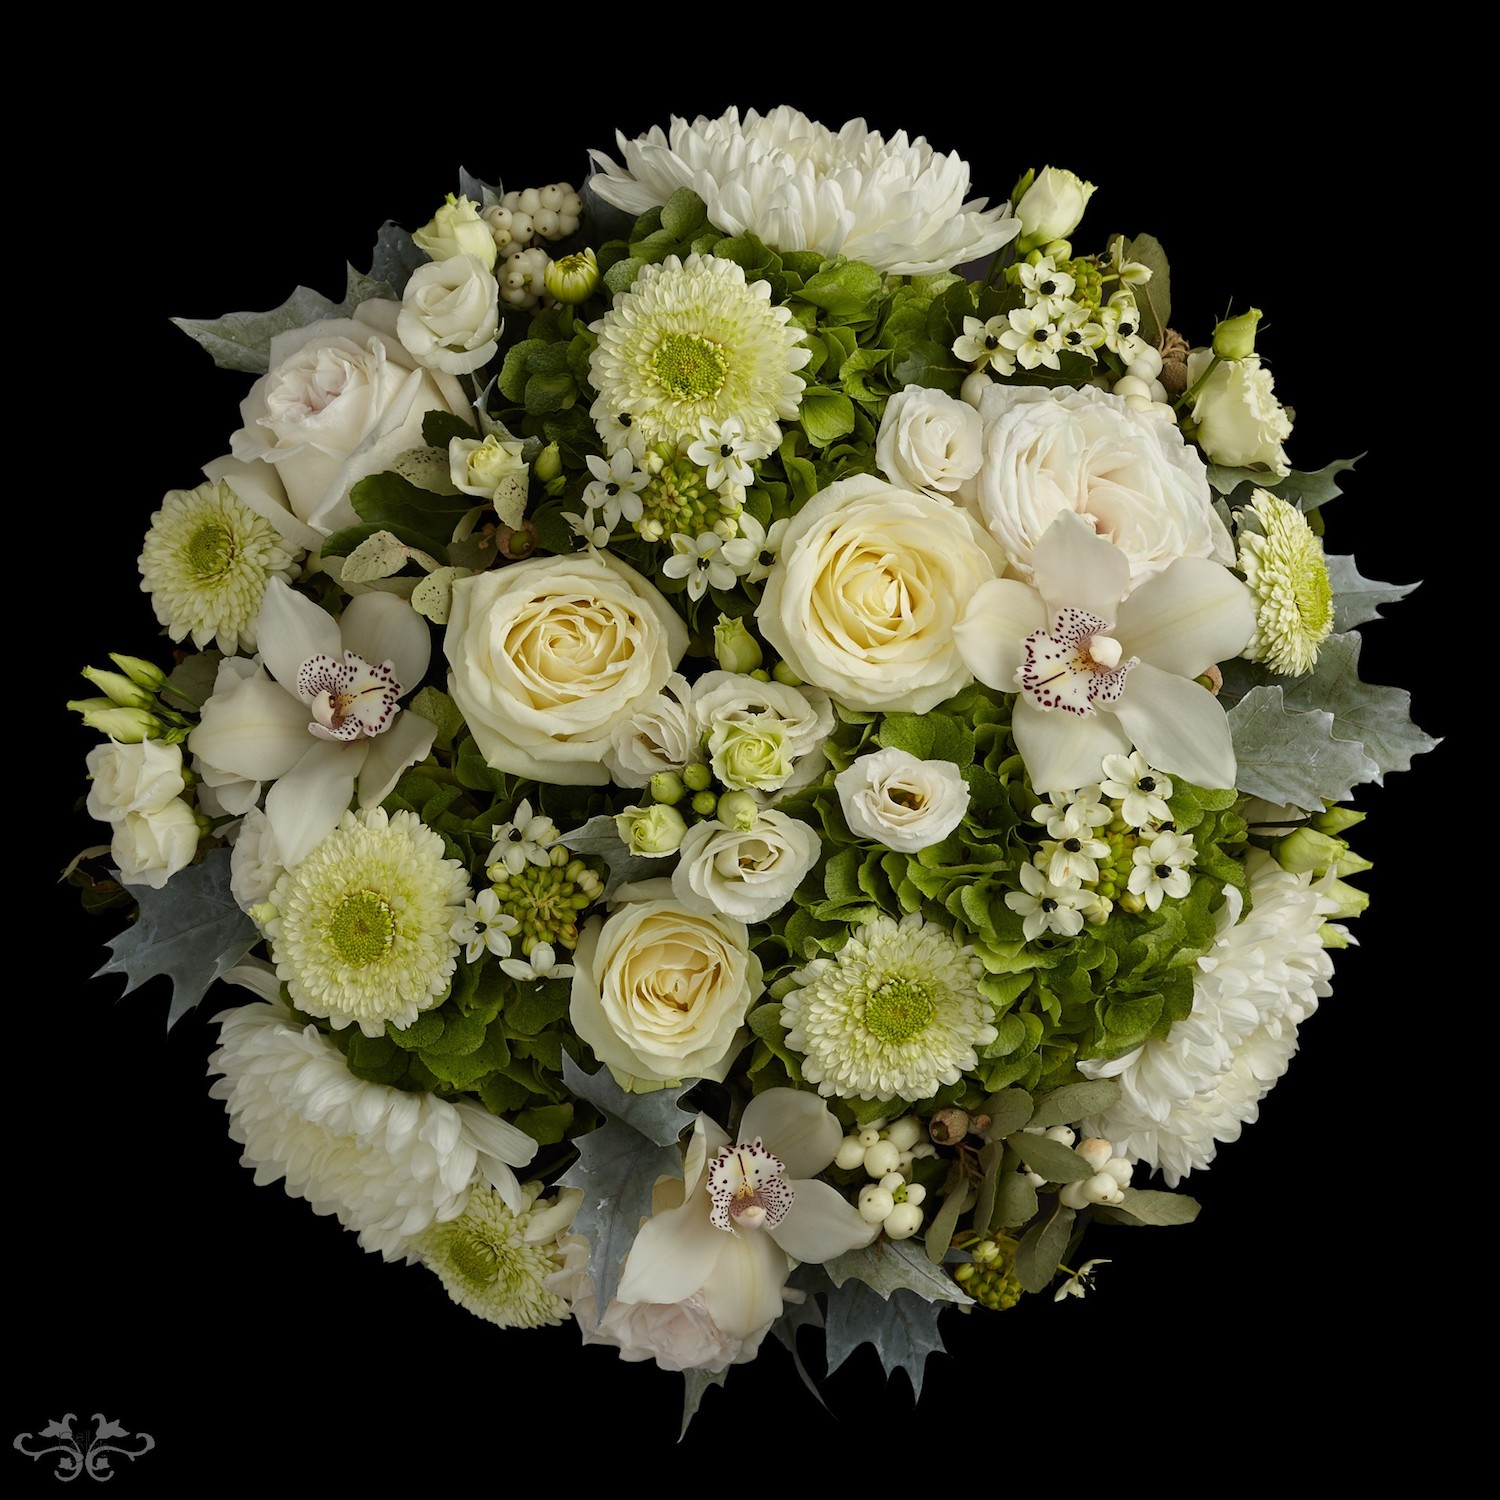 Neill Strain Floral Couture Autumn online flowers